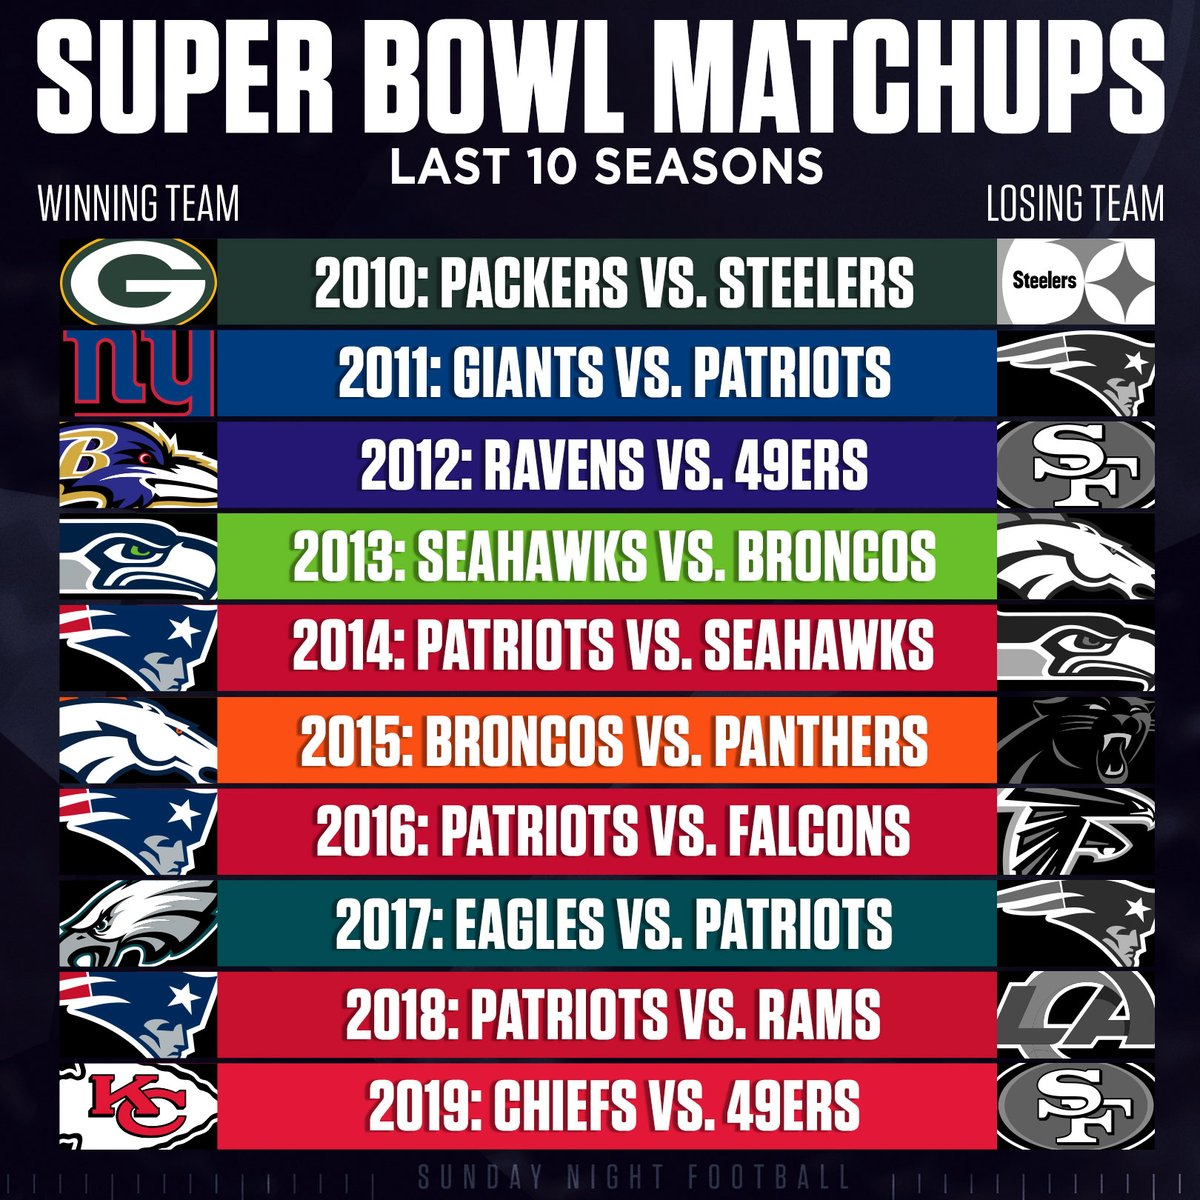 Retweet if your favorite team has made the Super Bowl in the last 10 seasons.